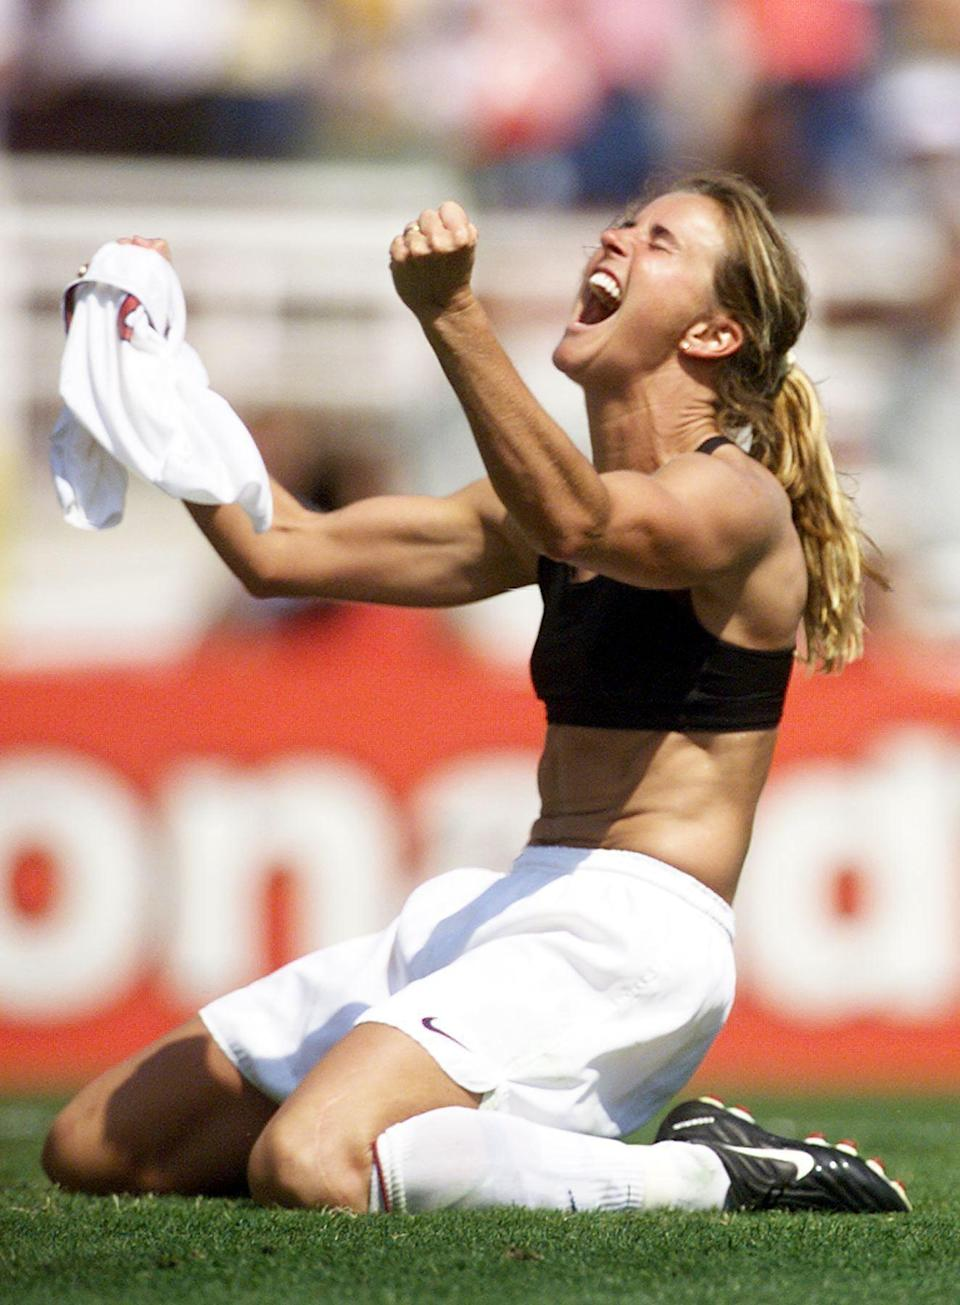 """<p>Some would count a black Nike sports bra as an iconic piece of clothing after Chastain kicked the winning penalty shot during the 1999 Women's World Cup against China and took off her jersey, twirling it in the air in triumph. The photo would go on to cover Jane Gottesman's book <b>Game Face: What Does a Female Athlete Look Like?</b> and the <a href=""""https://www.nytimes.com/2019/07/05/sports/soccer/brandi-chastain-womens-world-cup-image.html"""" class=""""link rapid-noclick-resp"""" rel=""""nofollow noopener"""" target=""""_blank"""" data-ylk=""""slk:sports bra is now framed in Chastain's home"""">sports bra is now framed in Chastain's home</a>. (She was even offered $500,000 for it shortly after the match.)</p>"""